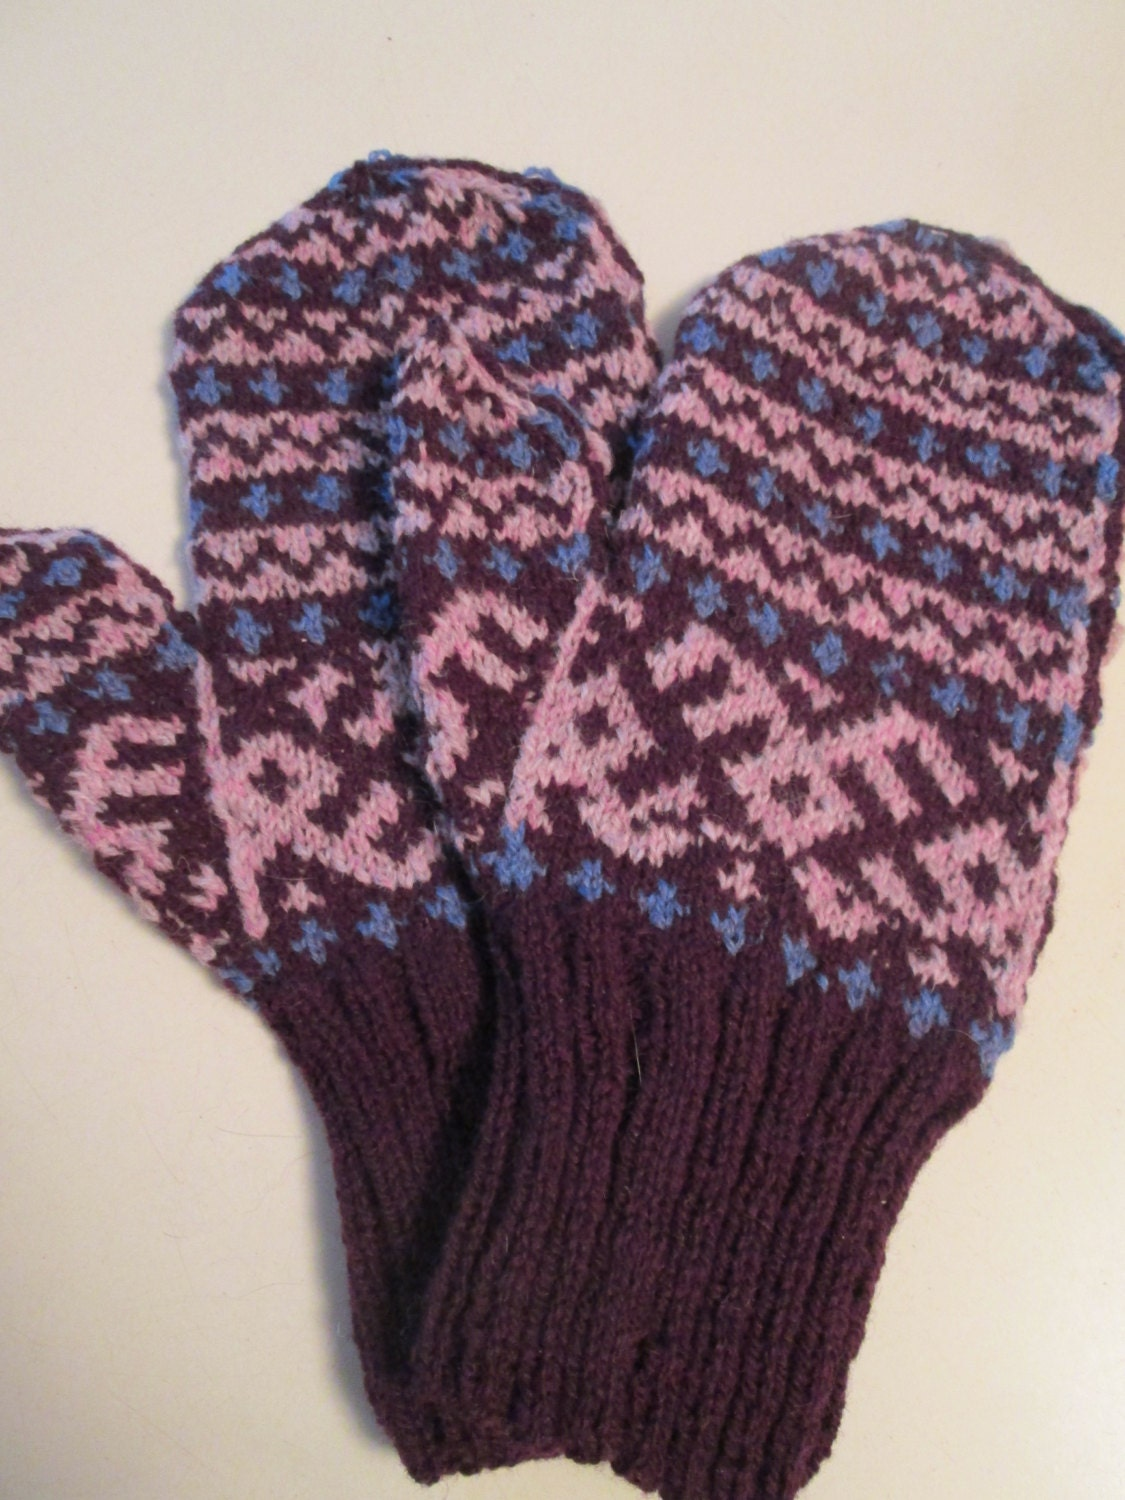 Knitting Eastern European Style : Hand knit intarsia wool mittens russian eastern european folk